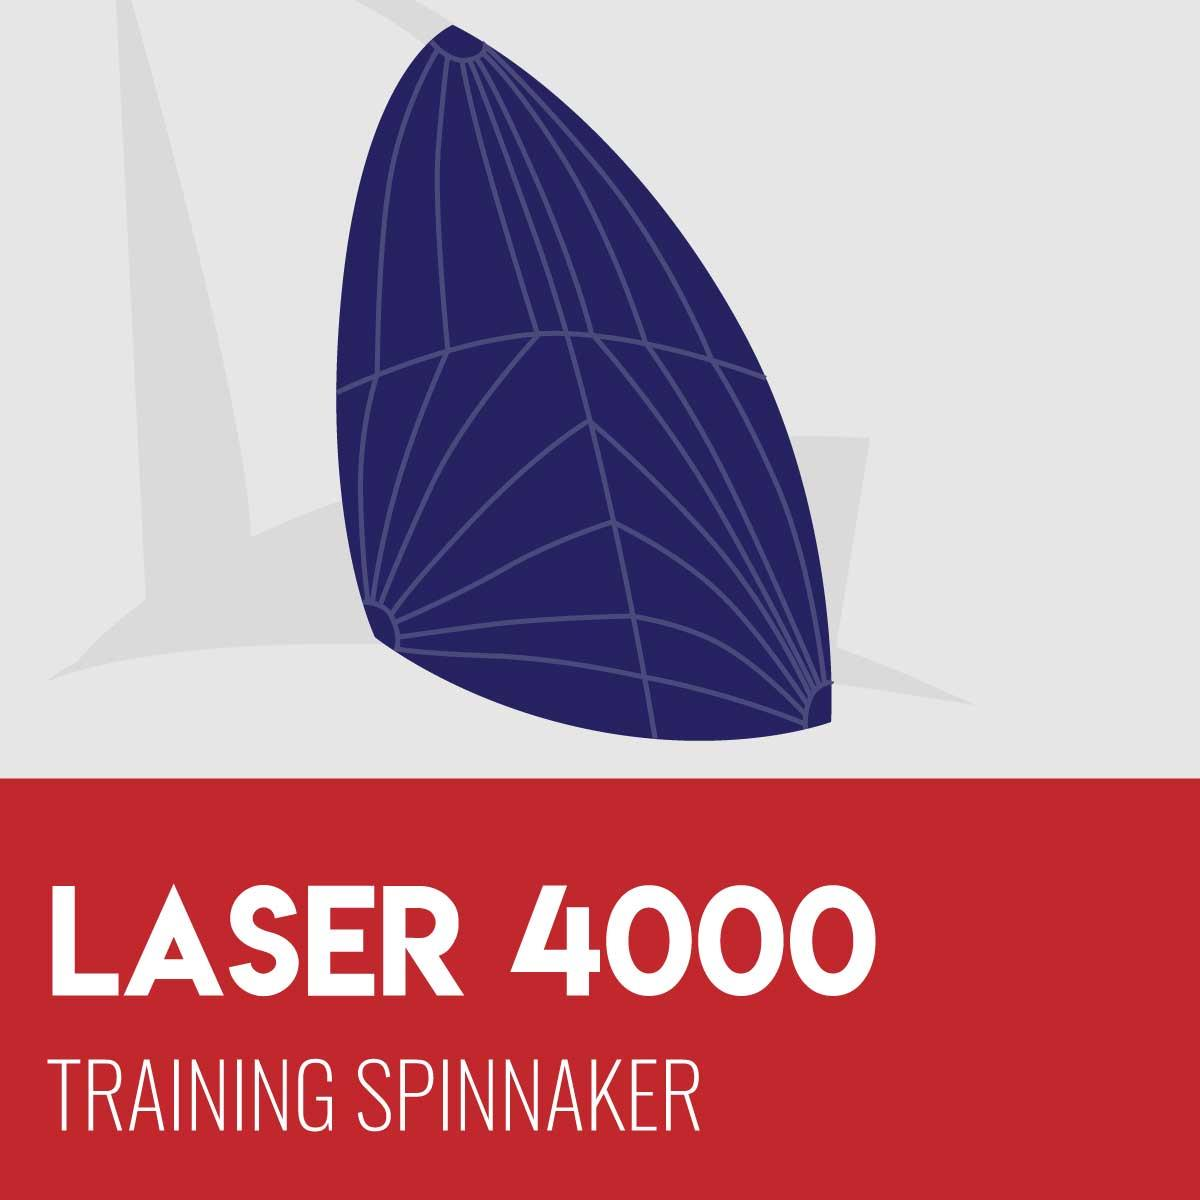 Laser 4000 Training Spinnaker